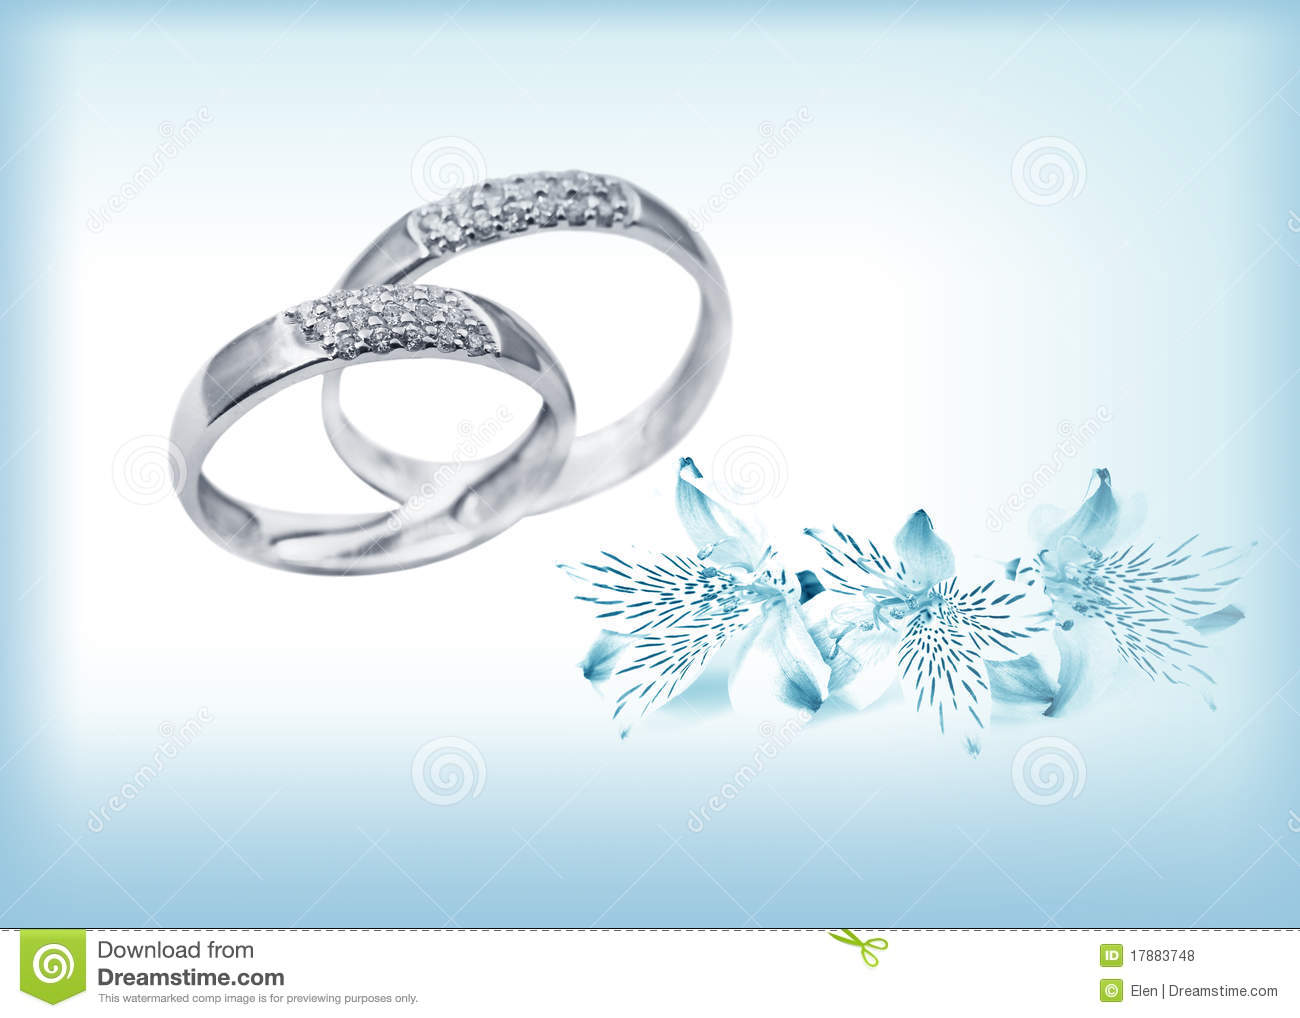 Elegant Wedding Rings With Brilliants Royalty Free Stock